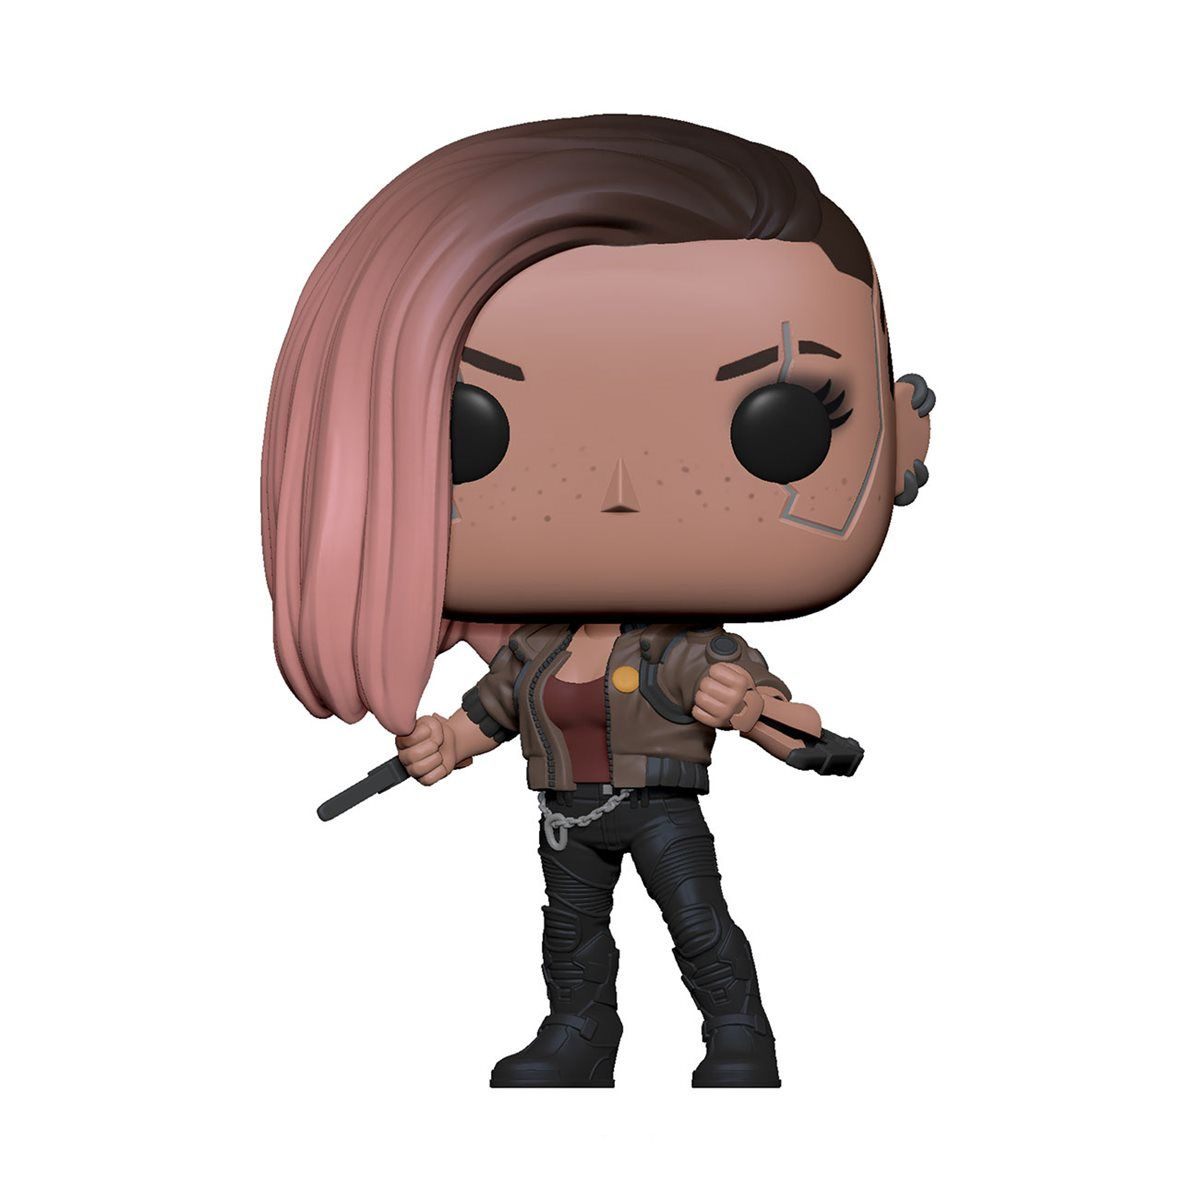 Funko Pop! V-Female: Cyberpunk 2077 #591- Funko